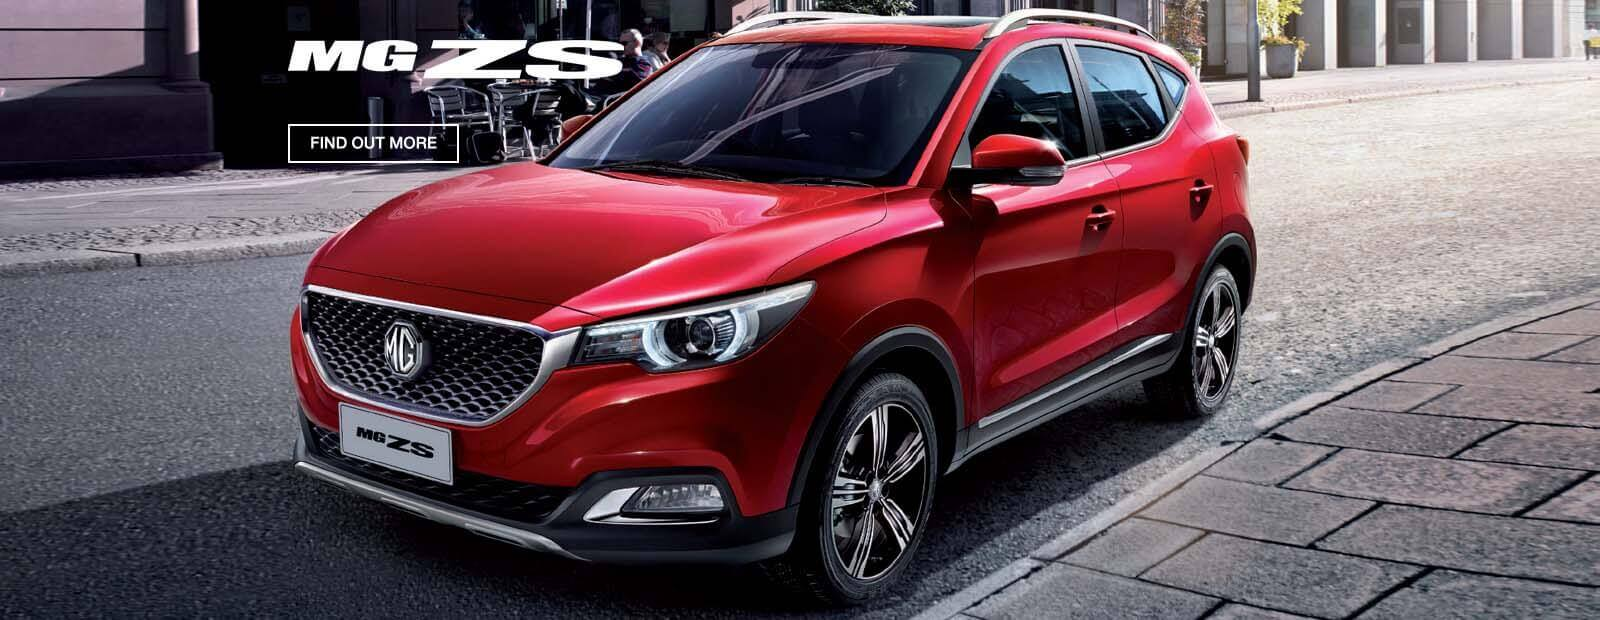 Discover the new MG ZS SUV, the latest model available from Victory MG.